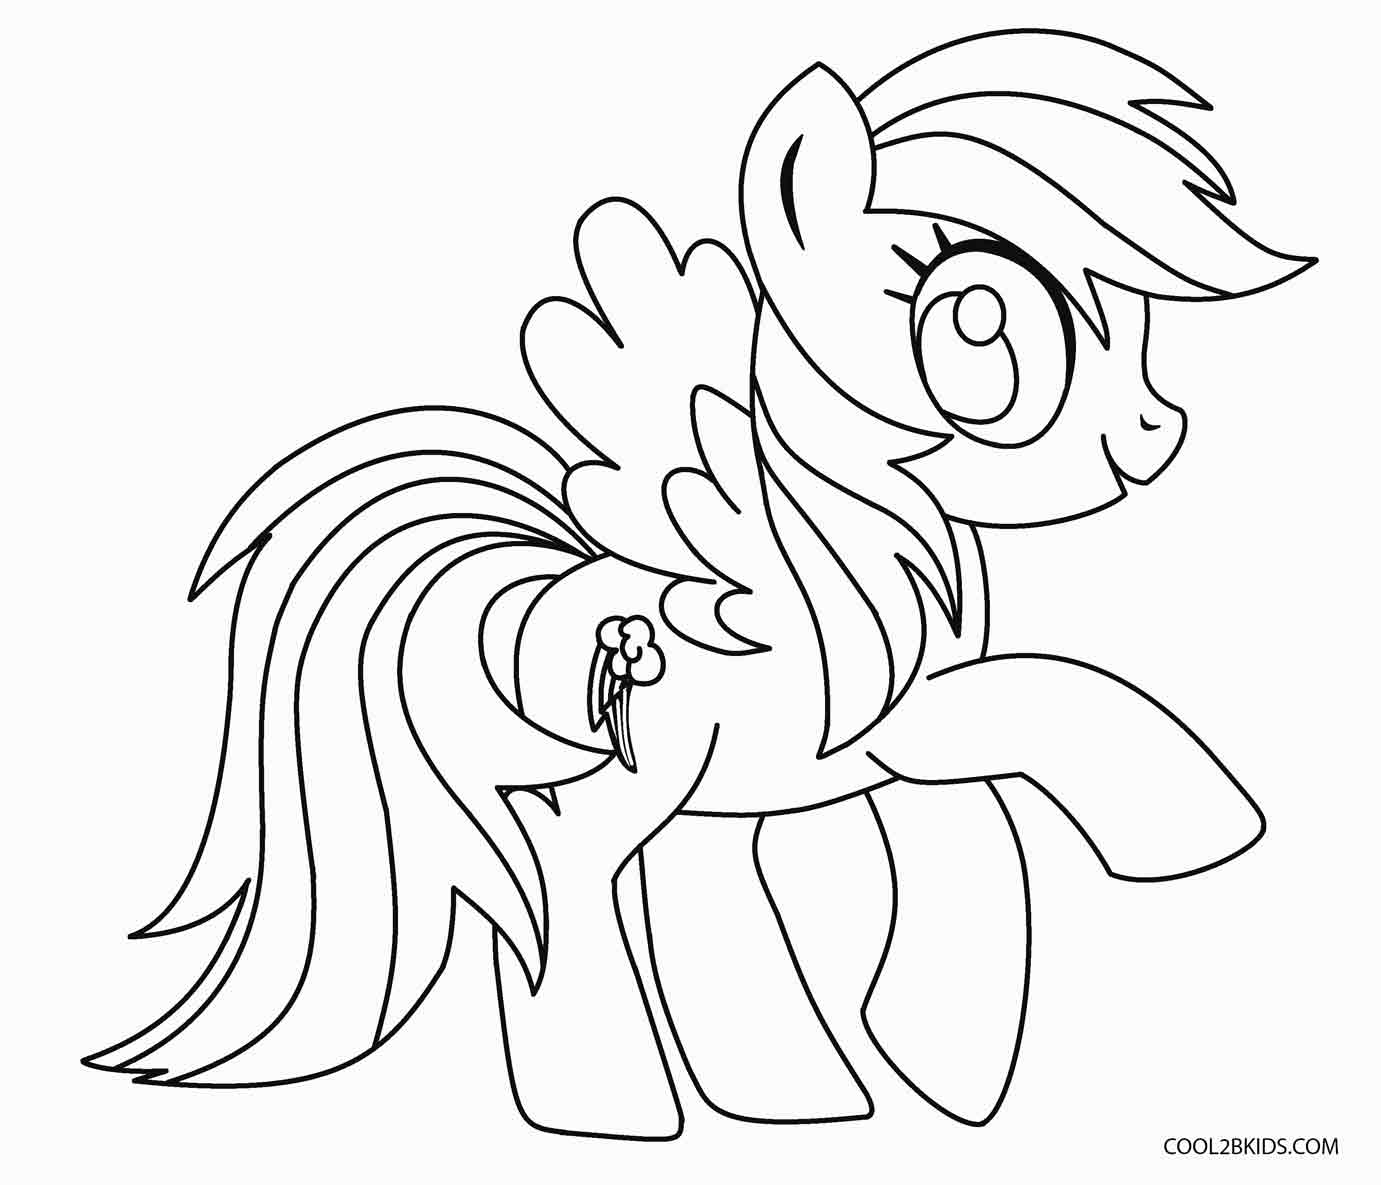 mlp coloring coloring pages of my little pony friendship is magic coloring mlp